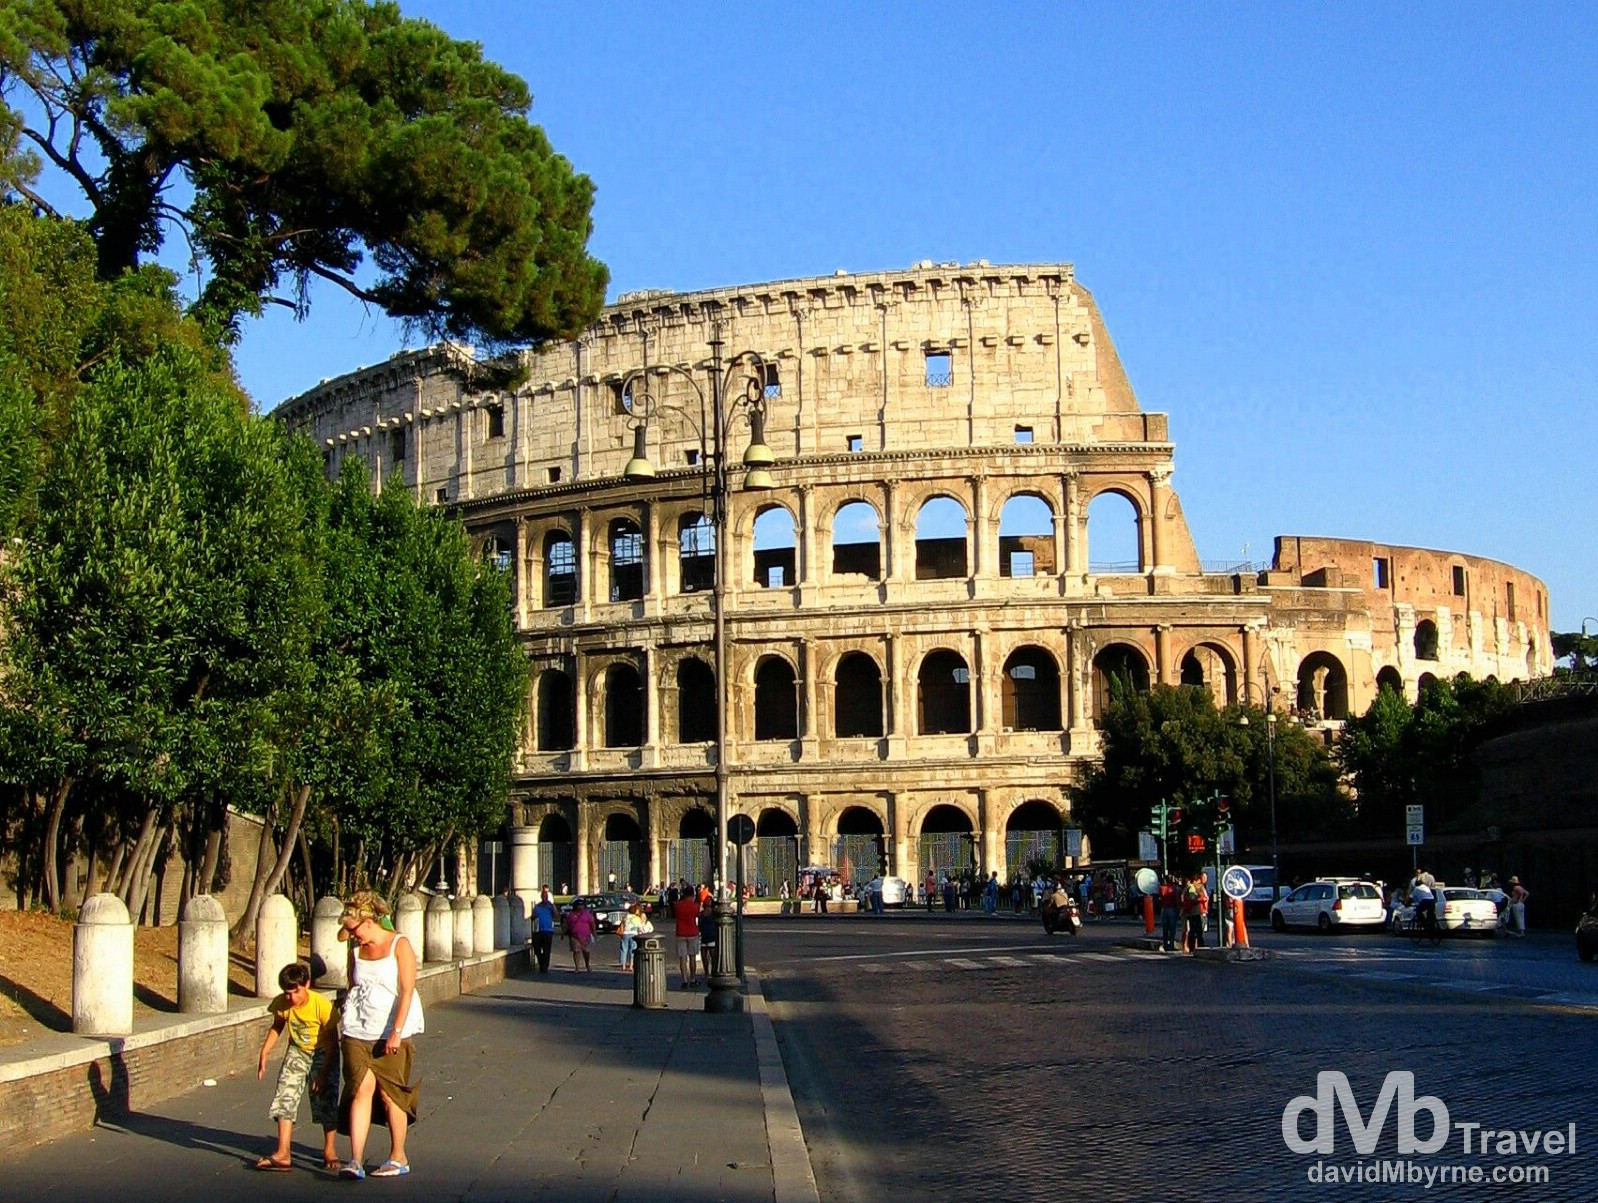 The view of the external shell of the Colosseum from Via della Fori Imperiali, Rome, Italy. September 1st, 2007.